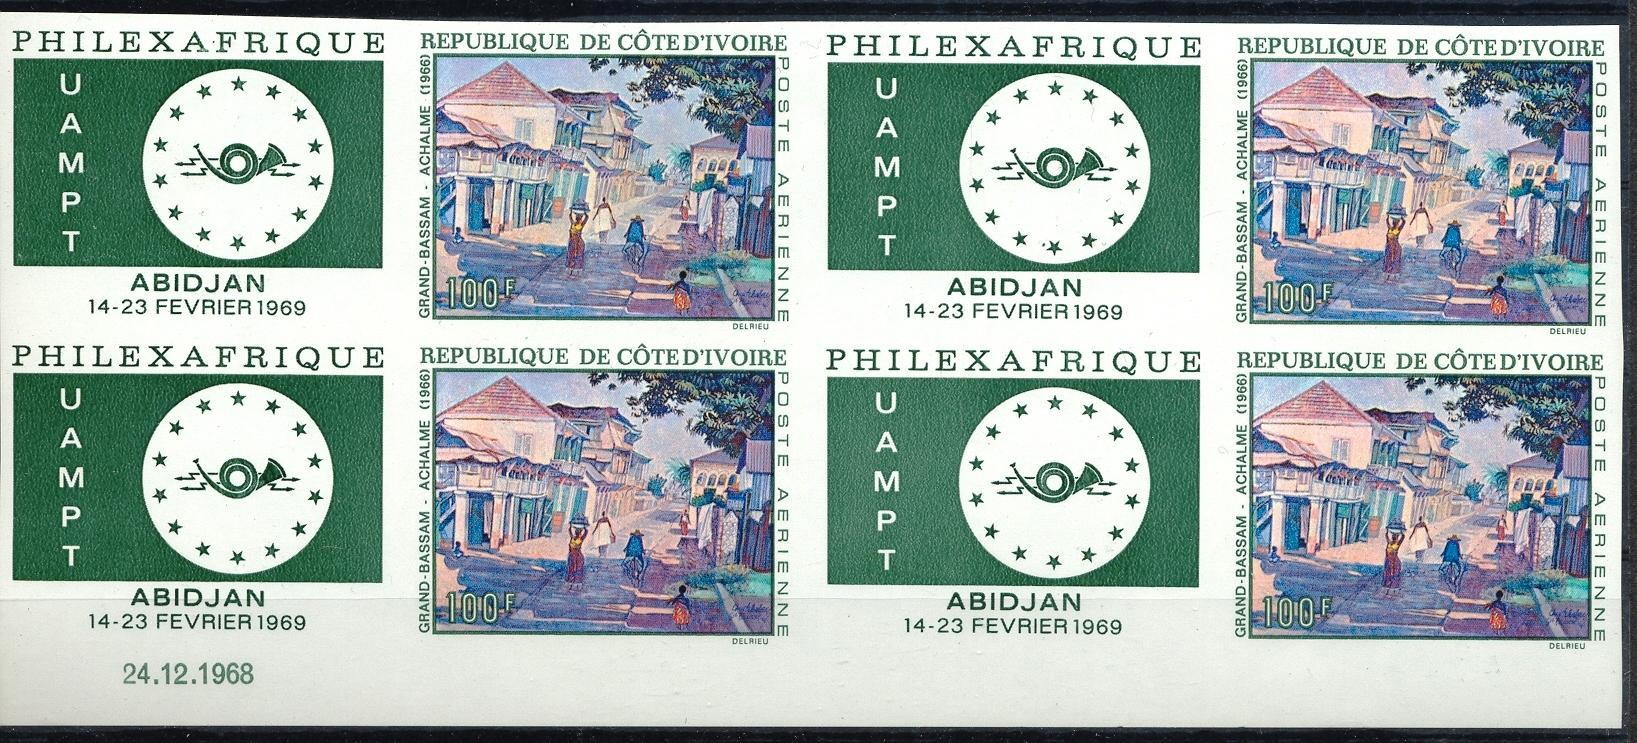 Stamps with Butterflies, Art, UAMPT from Cote d'Ivoire (image for product #045315)